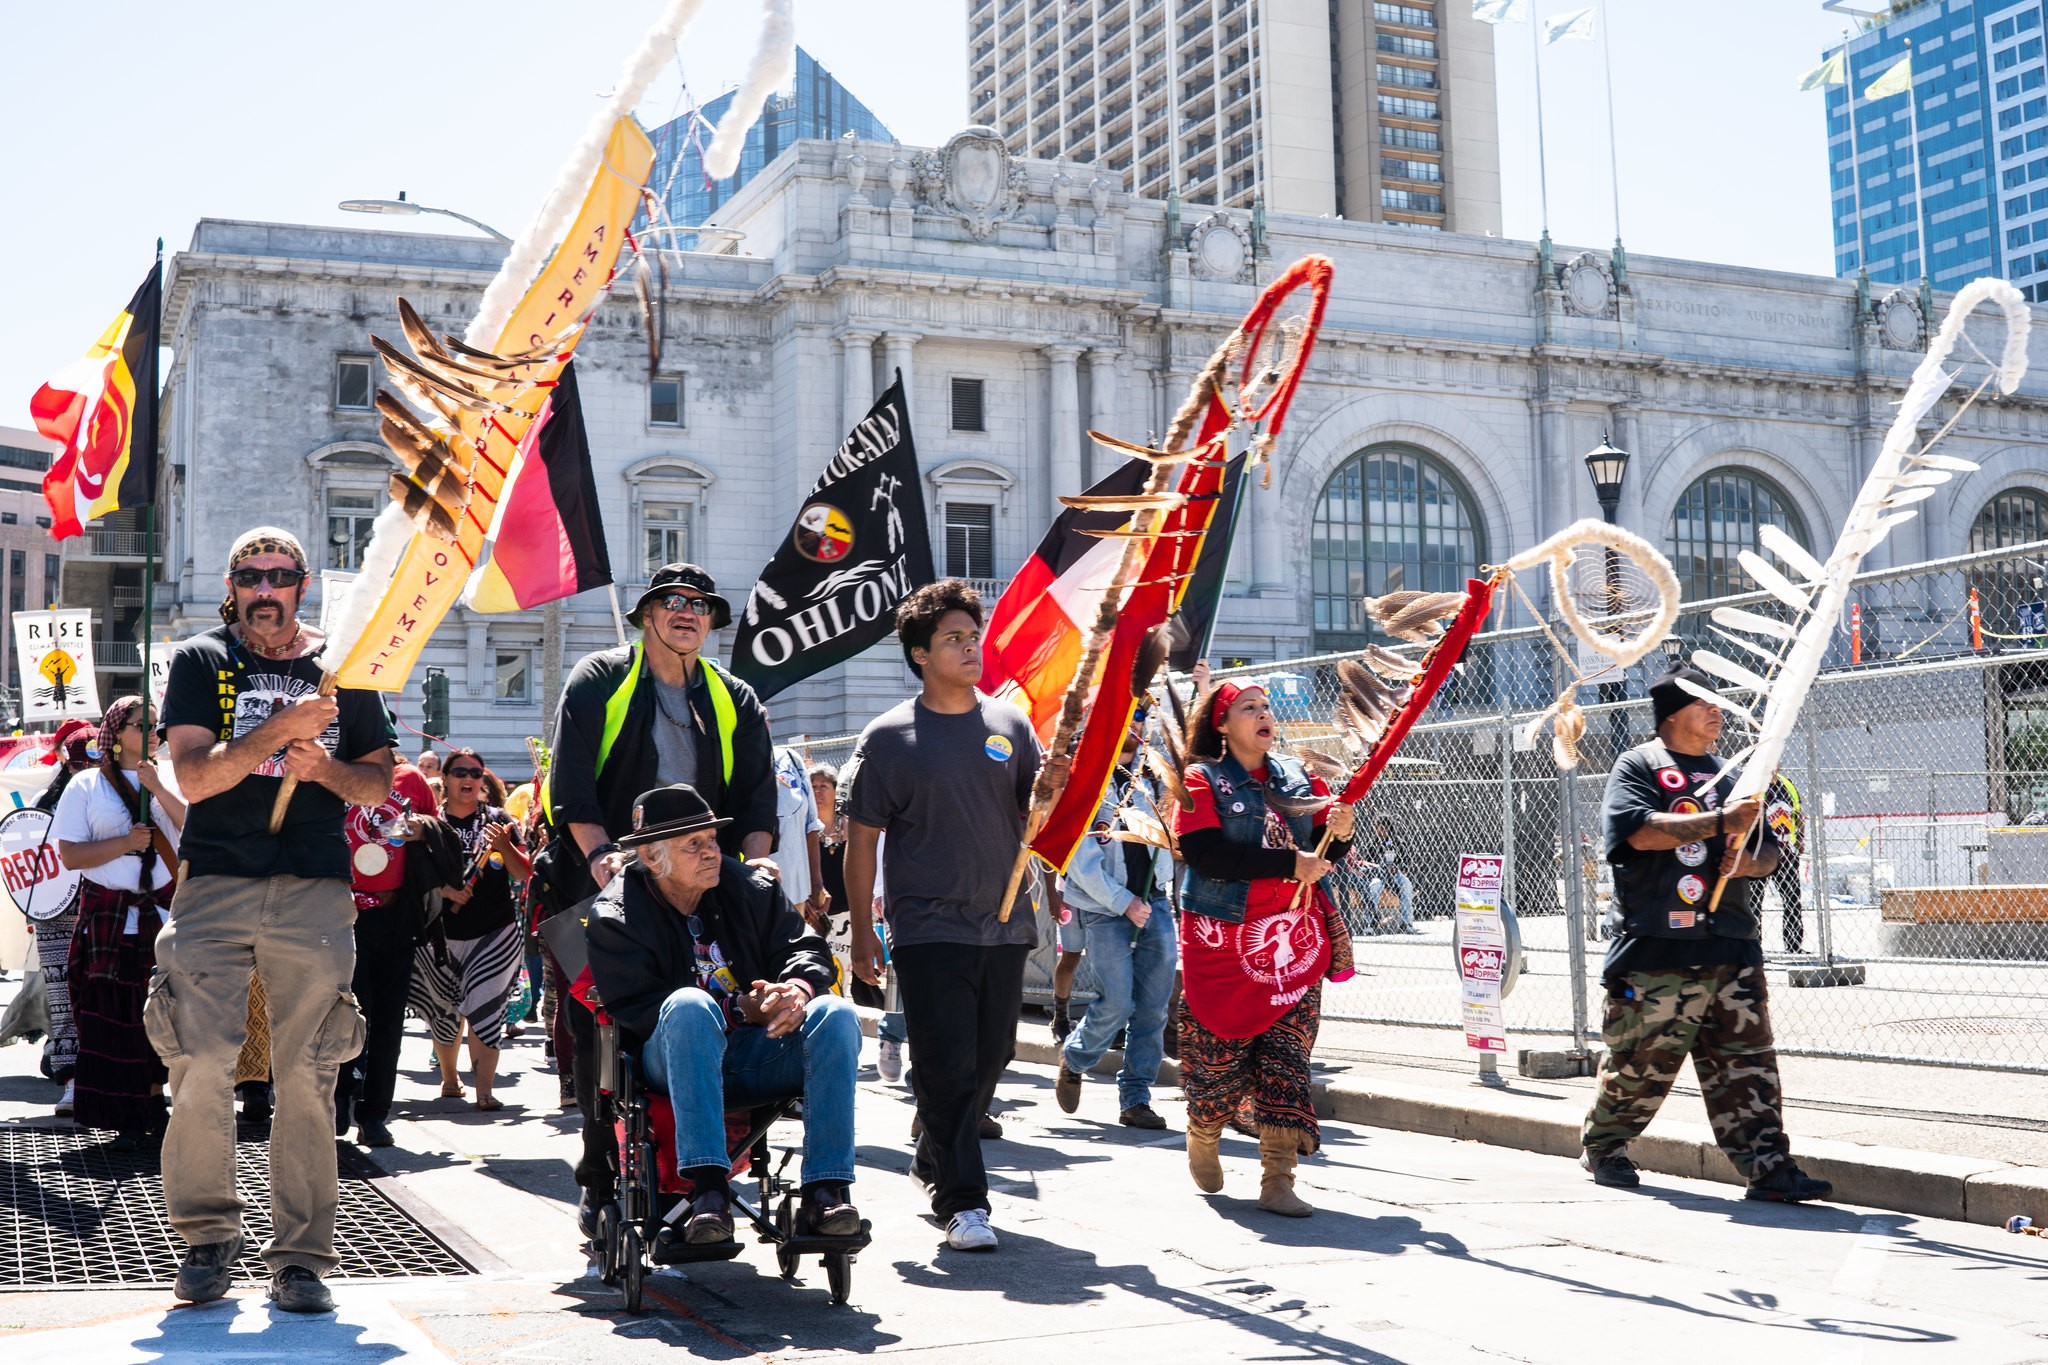 Indigenous protestors at the Rise for Climate, Jobs, & Justice in San Francisco